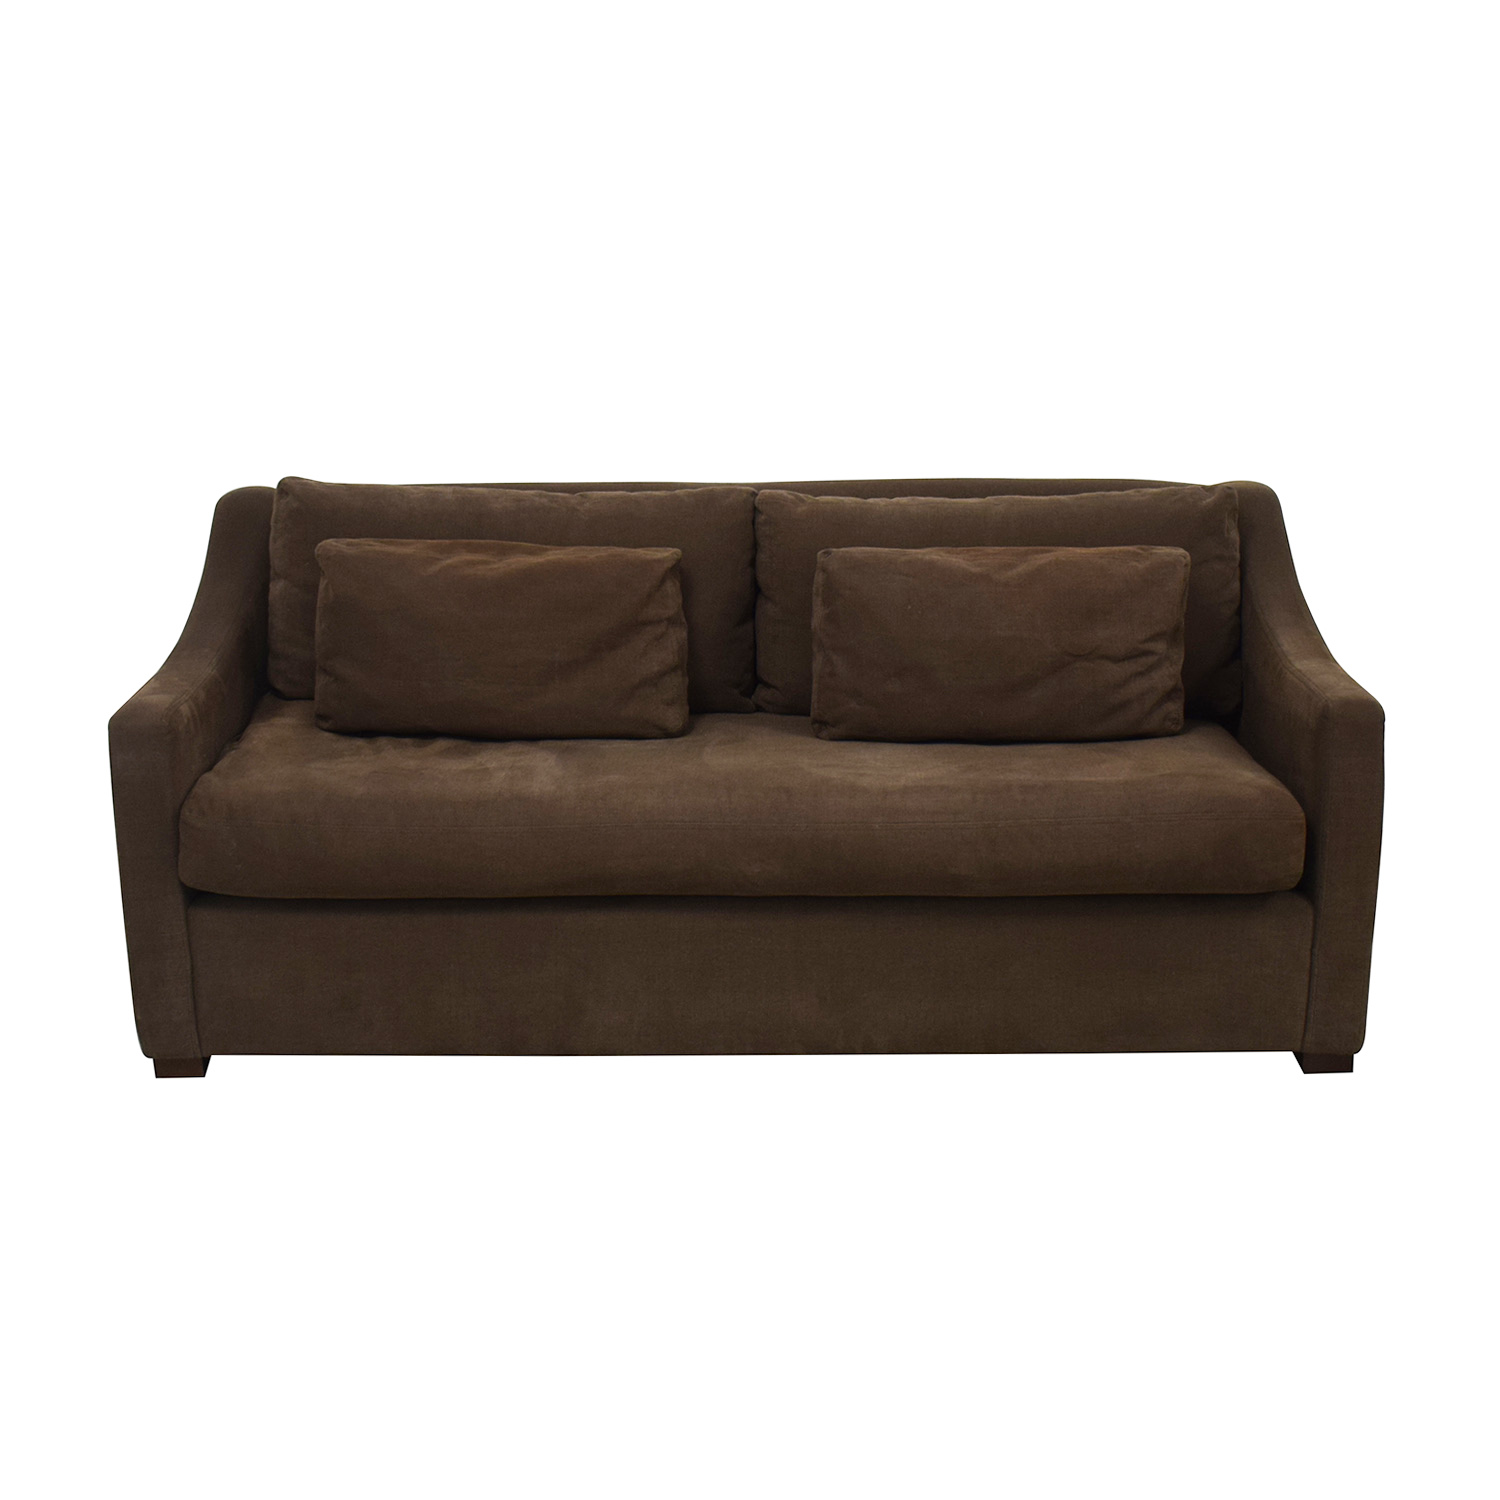 Restoration Hardware Restoration Hardware Belgian Slope Arm Sofa dark brown